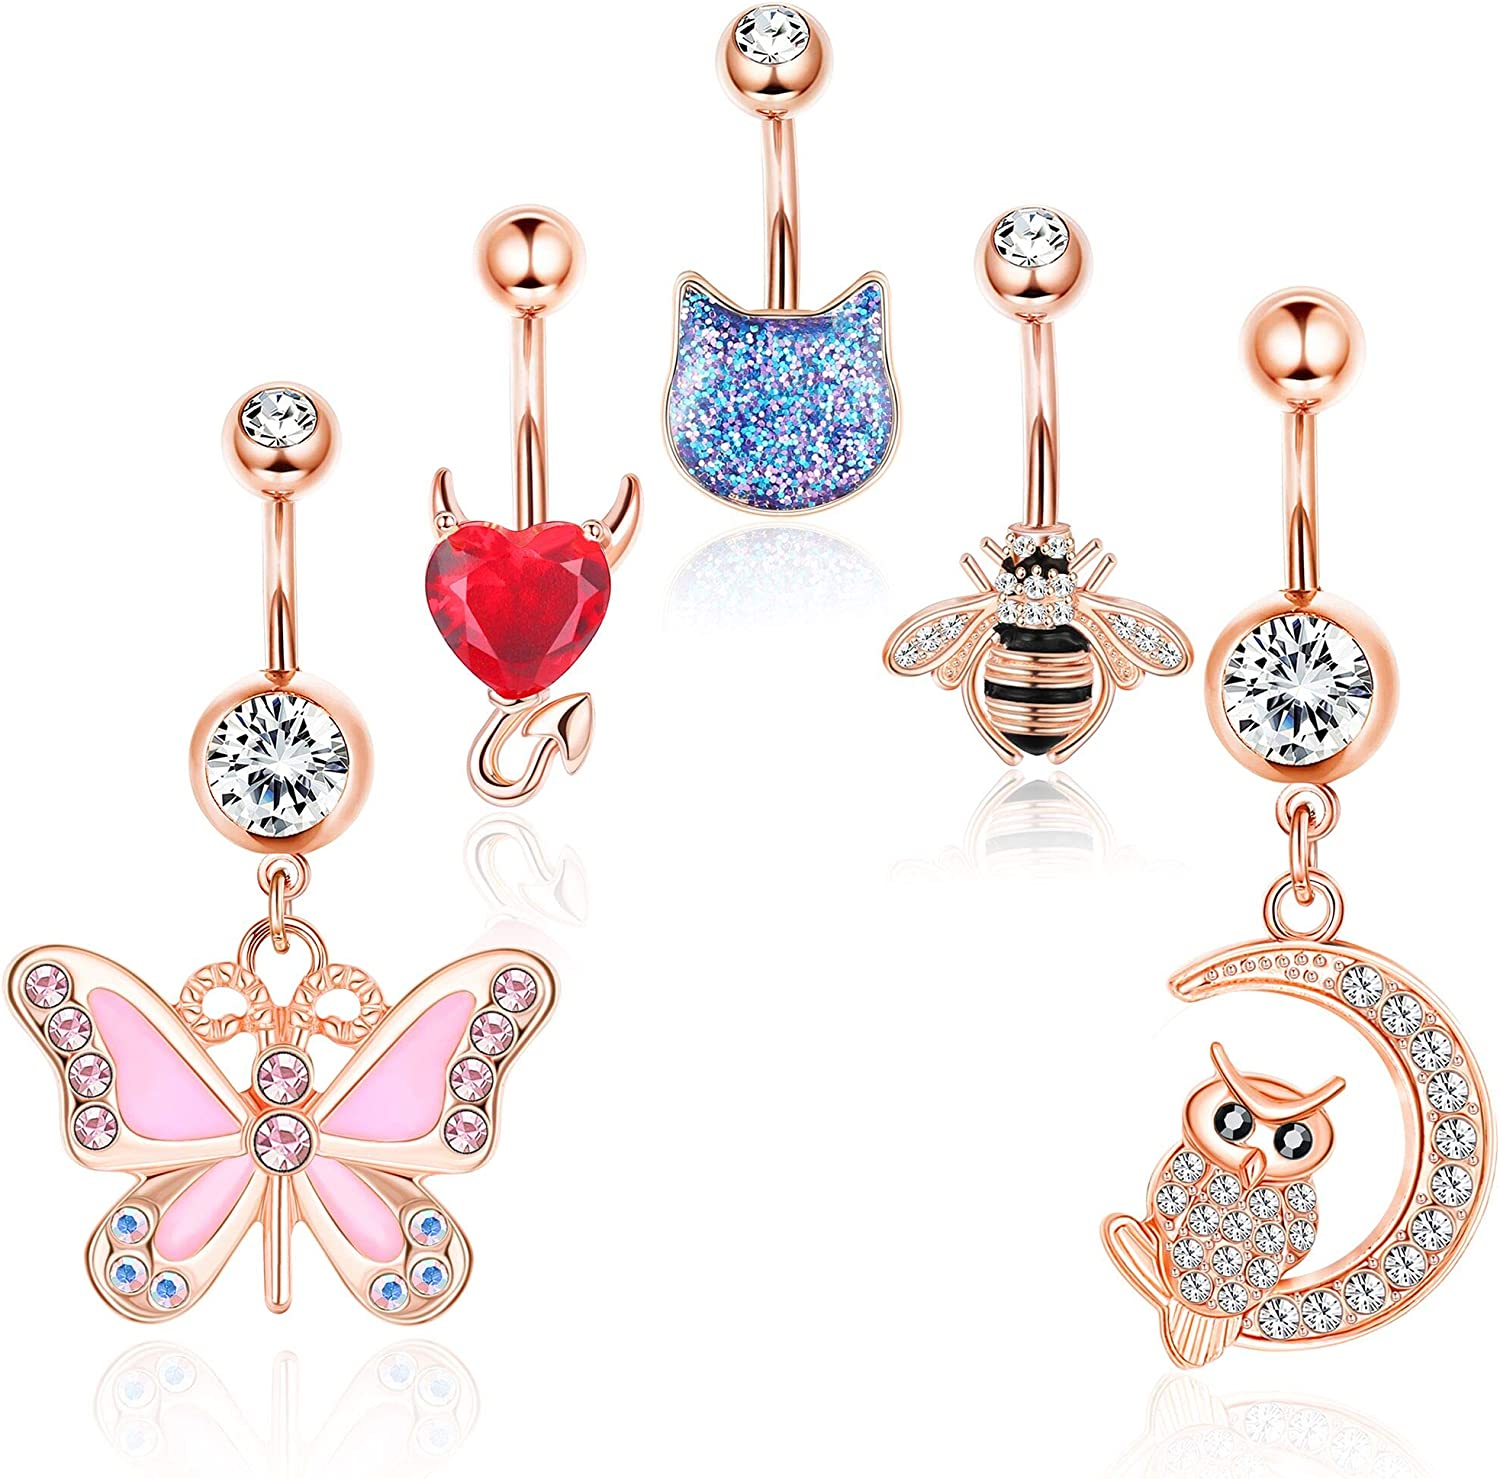 Drperfect 5Pcs Belly Button Rings for Women 14G Stainless Steel Navel Rings Gold Rose Gold Sliver Plated CZ Belly Rings Barbell Piercing Body Jewelry